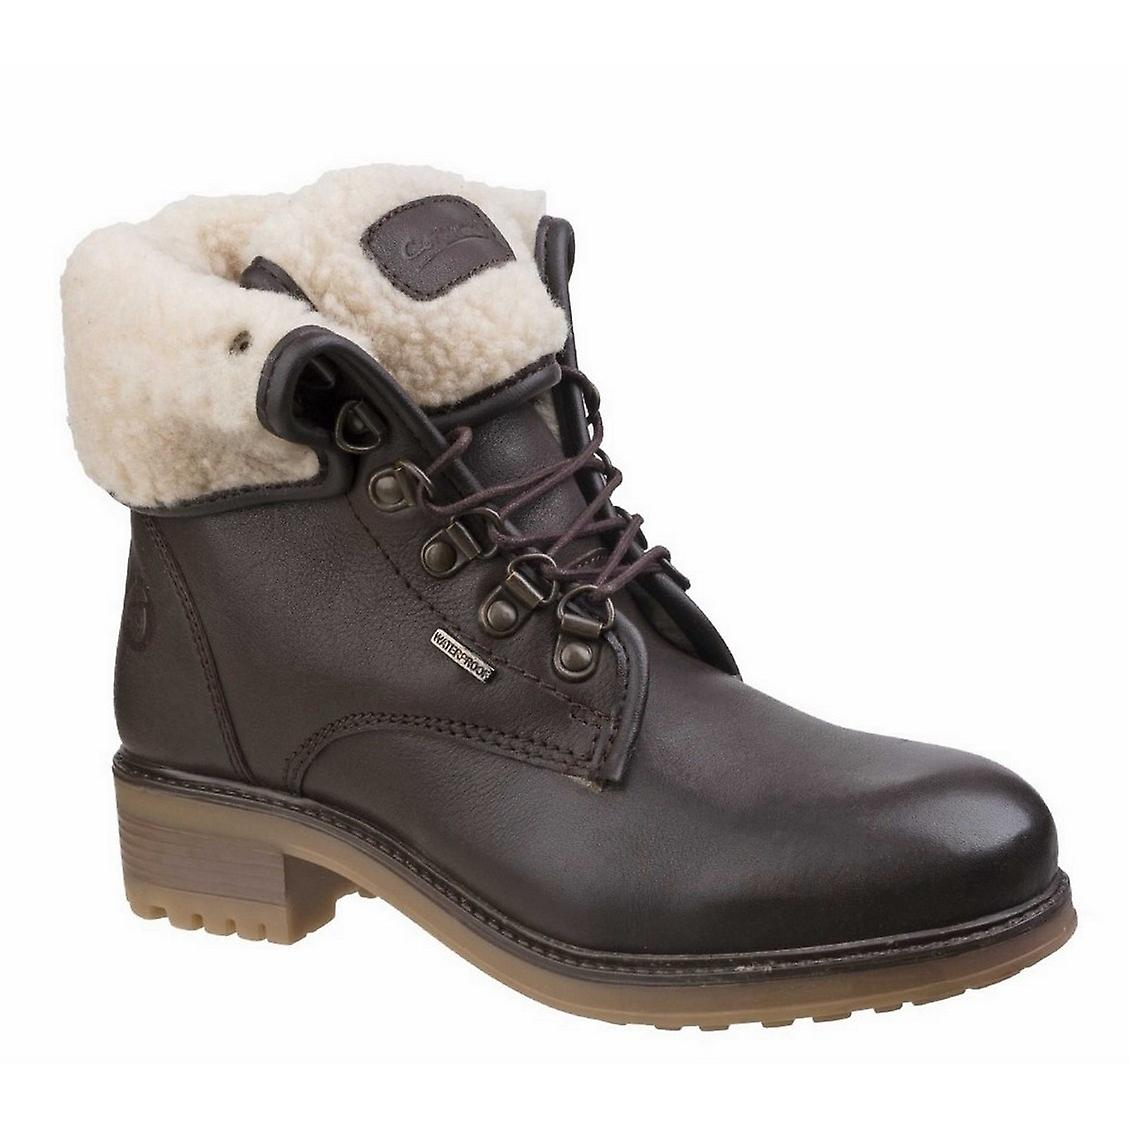 Cotswold Womens/ladies Asthall Waterproof Boots